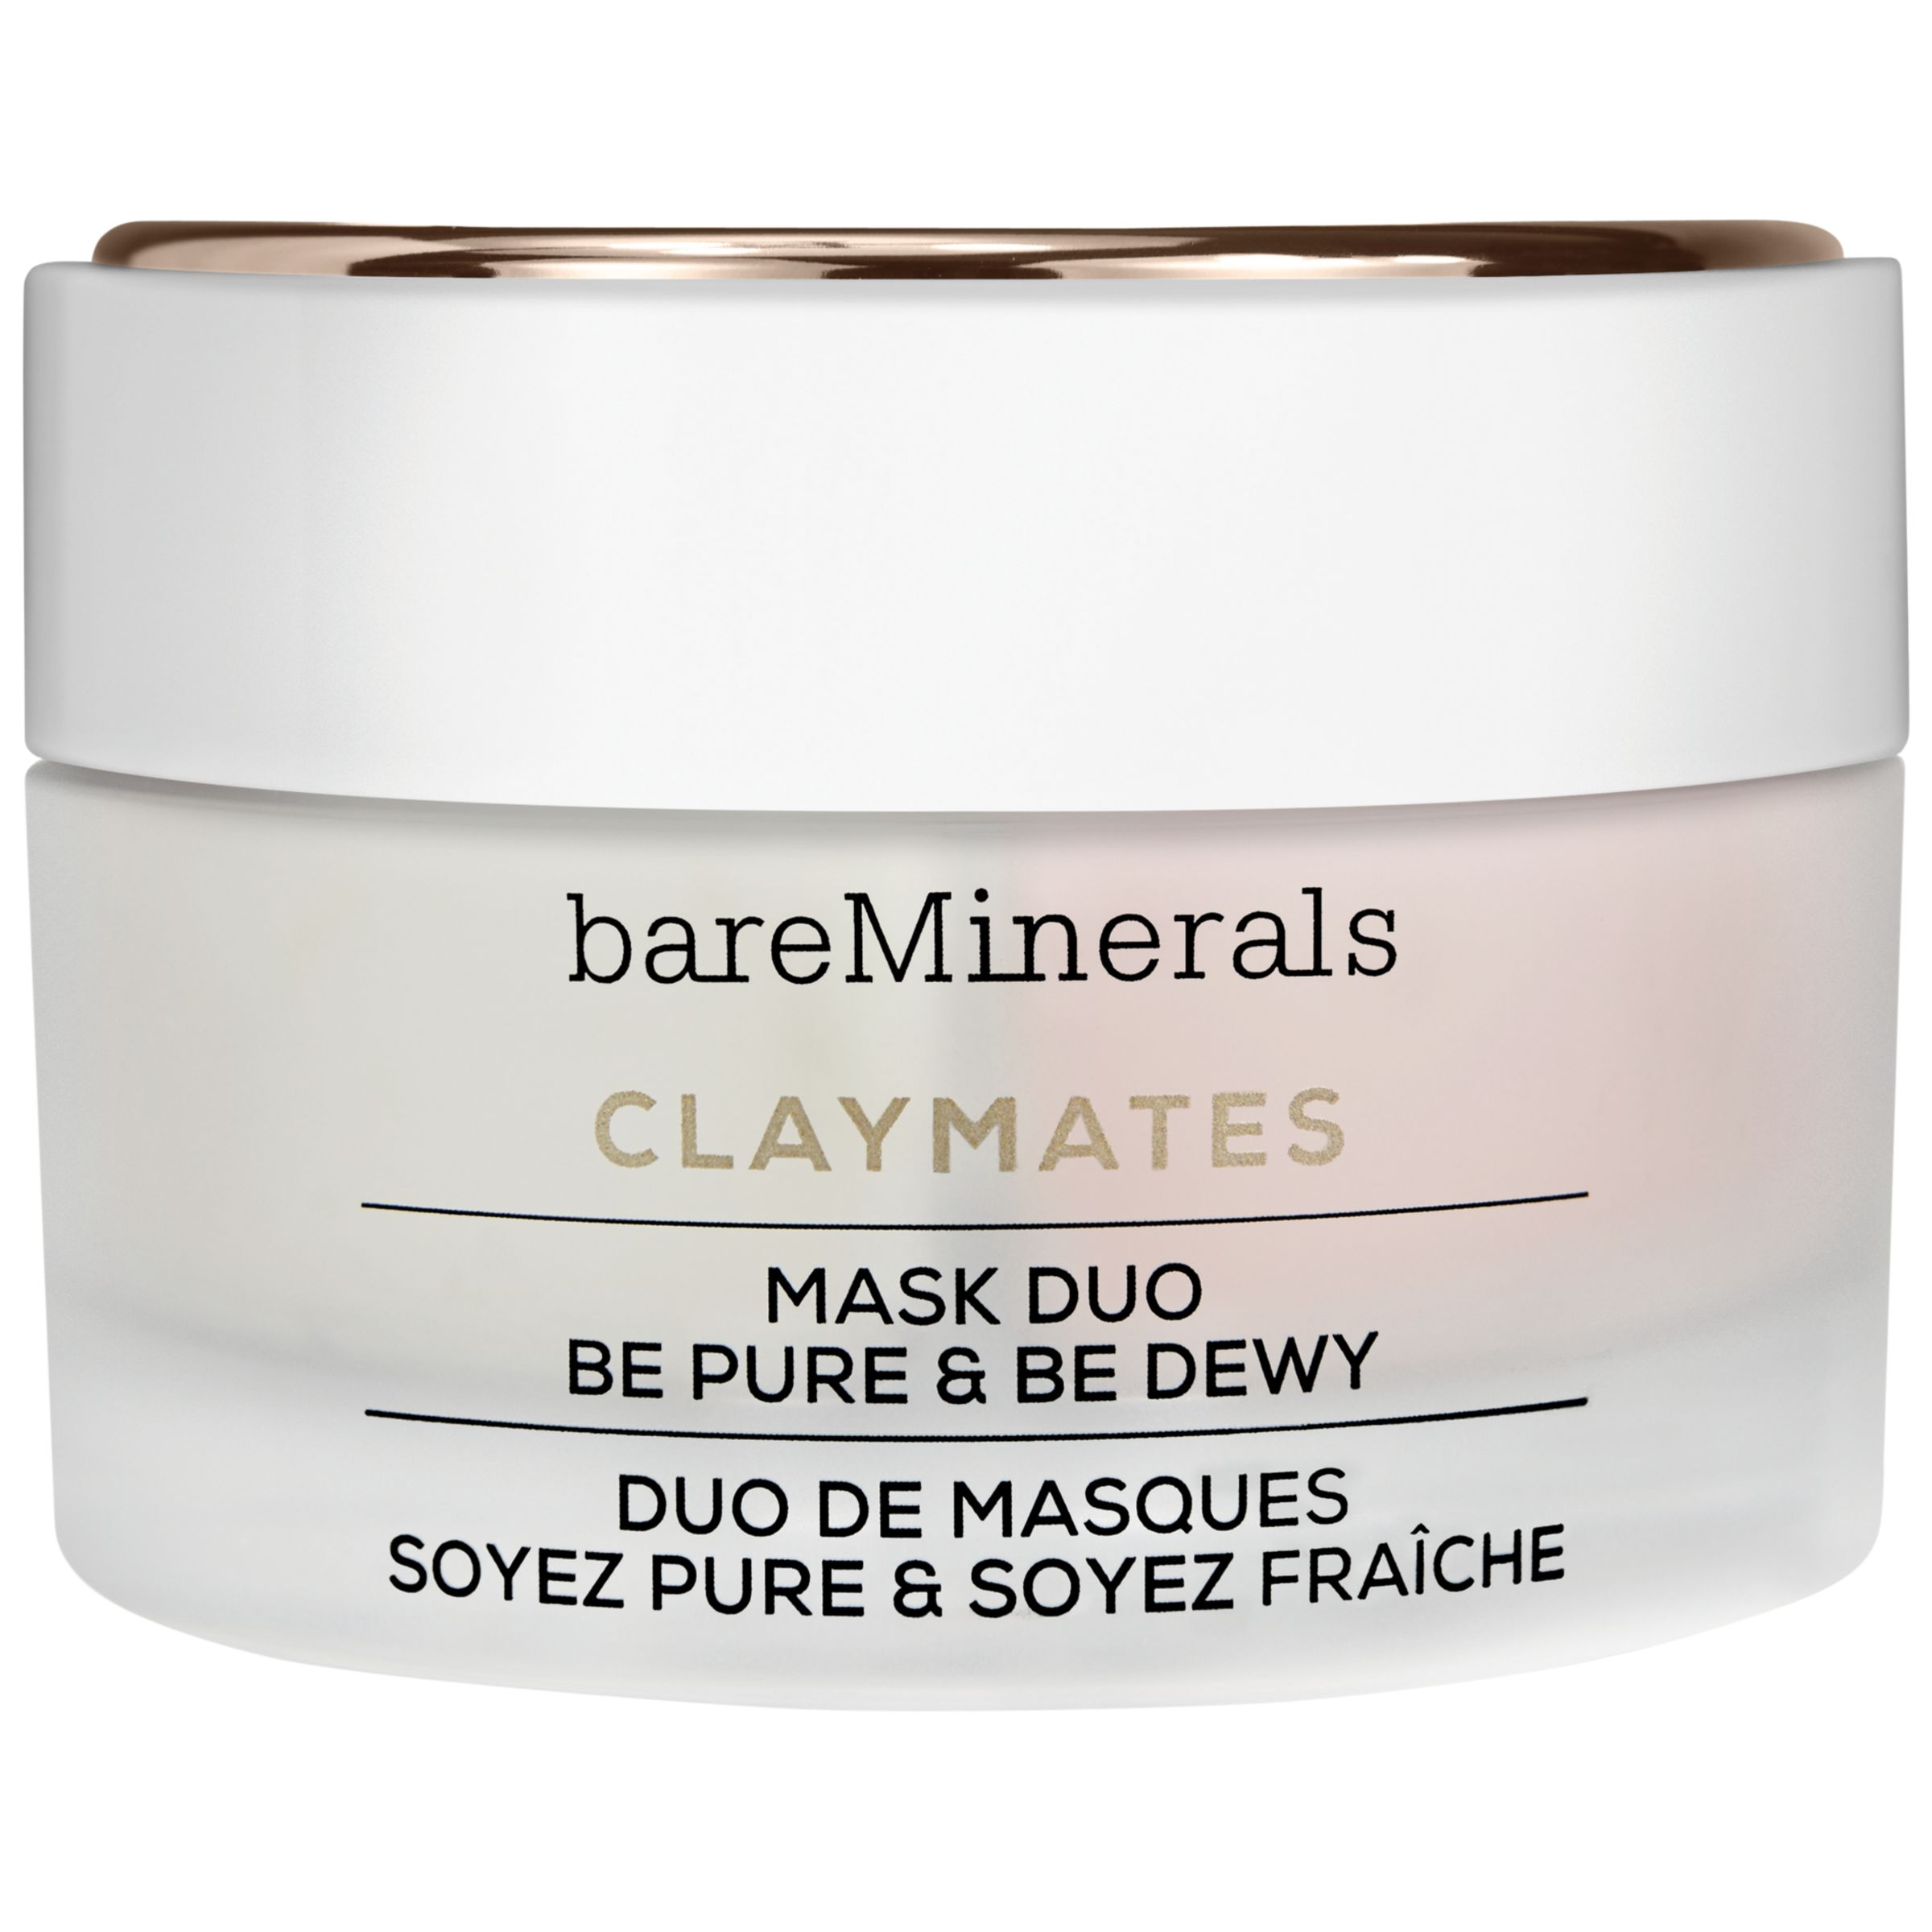 bareMinerals bareMinerals Claymates Mask Duo Be Pure & Be Dewy, 58g